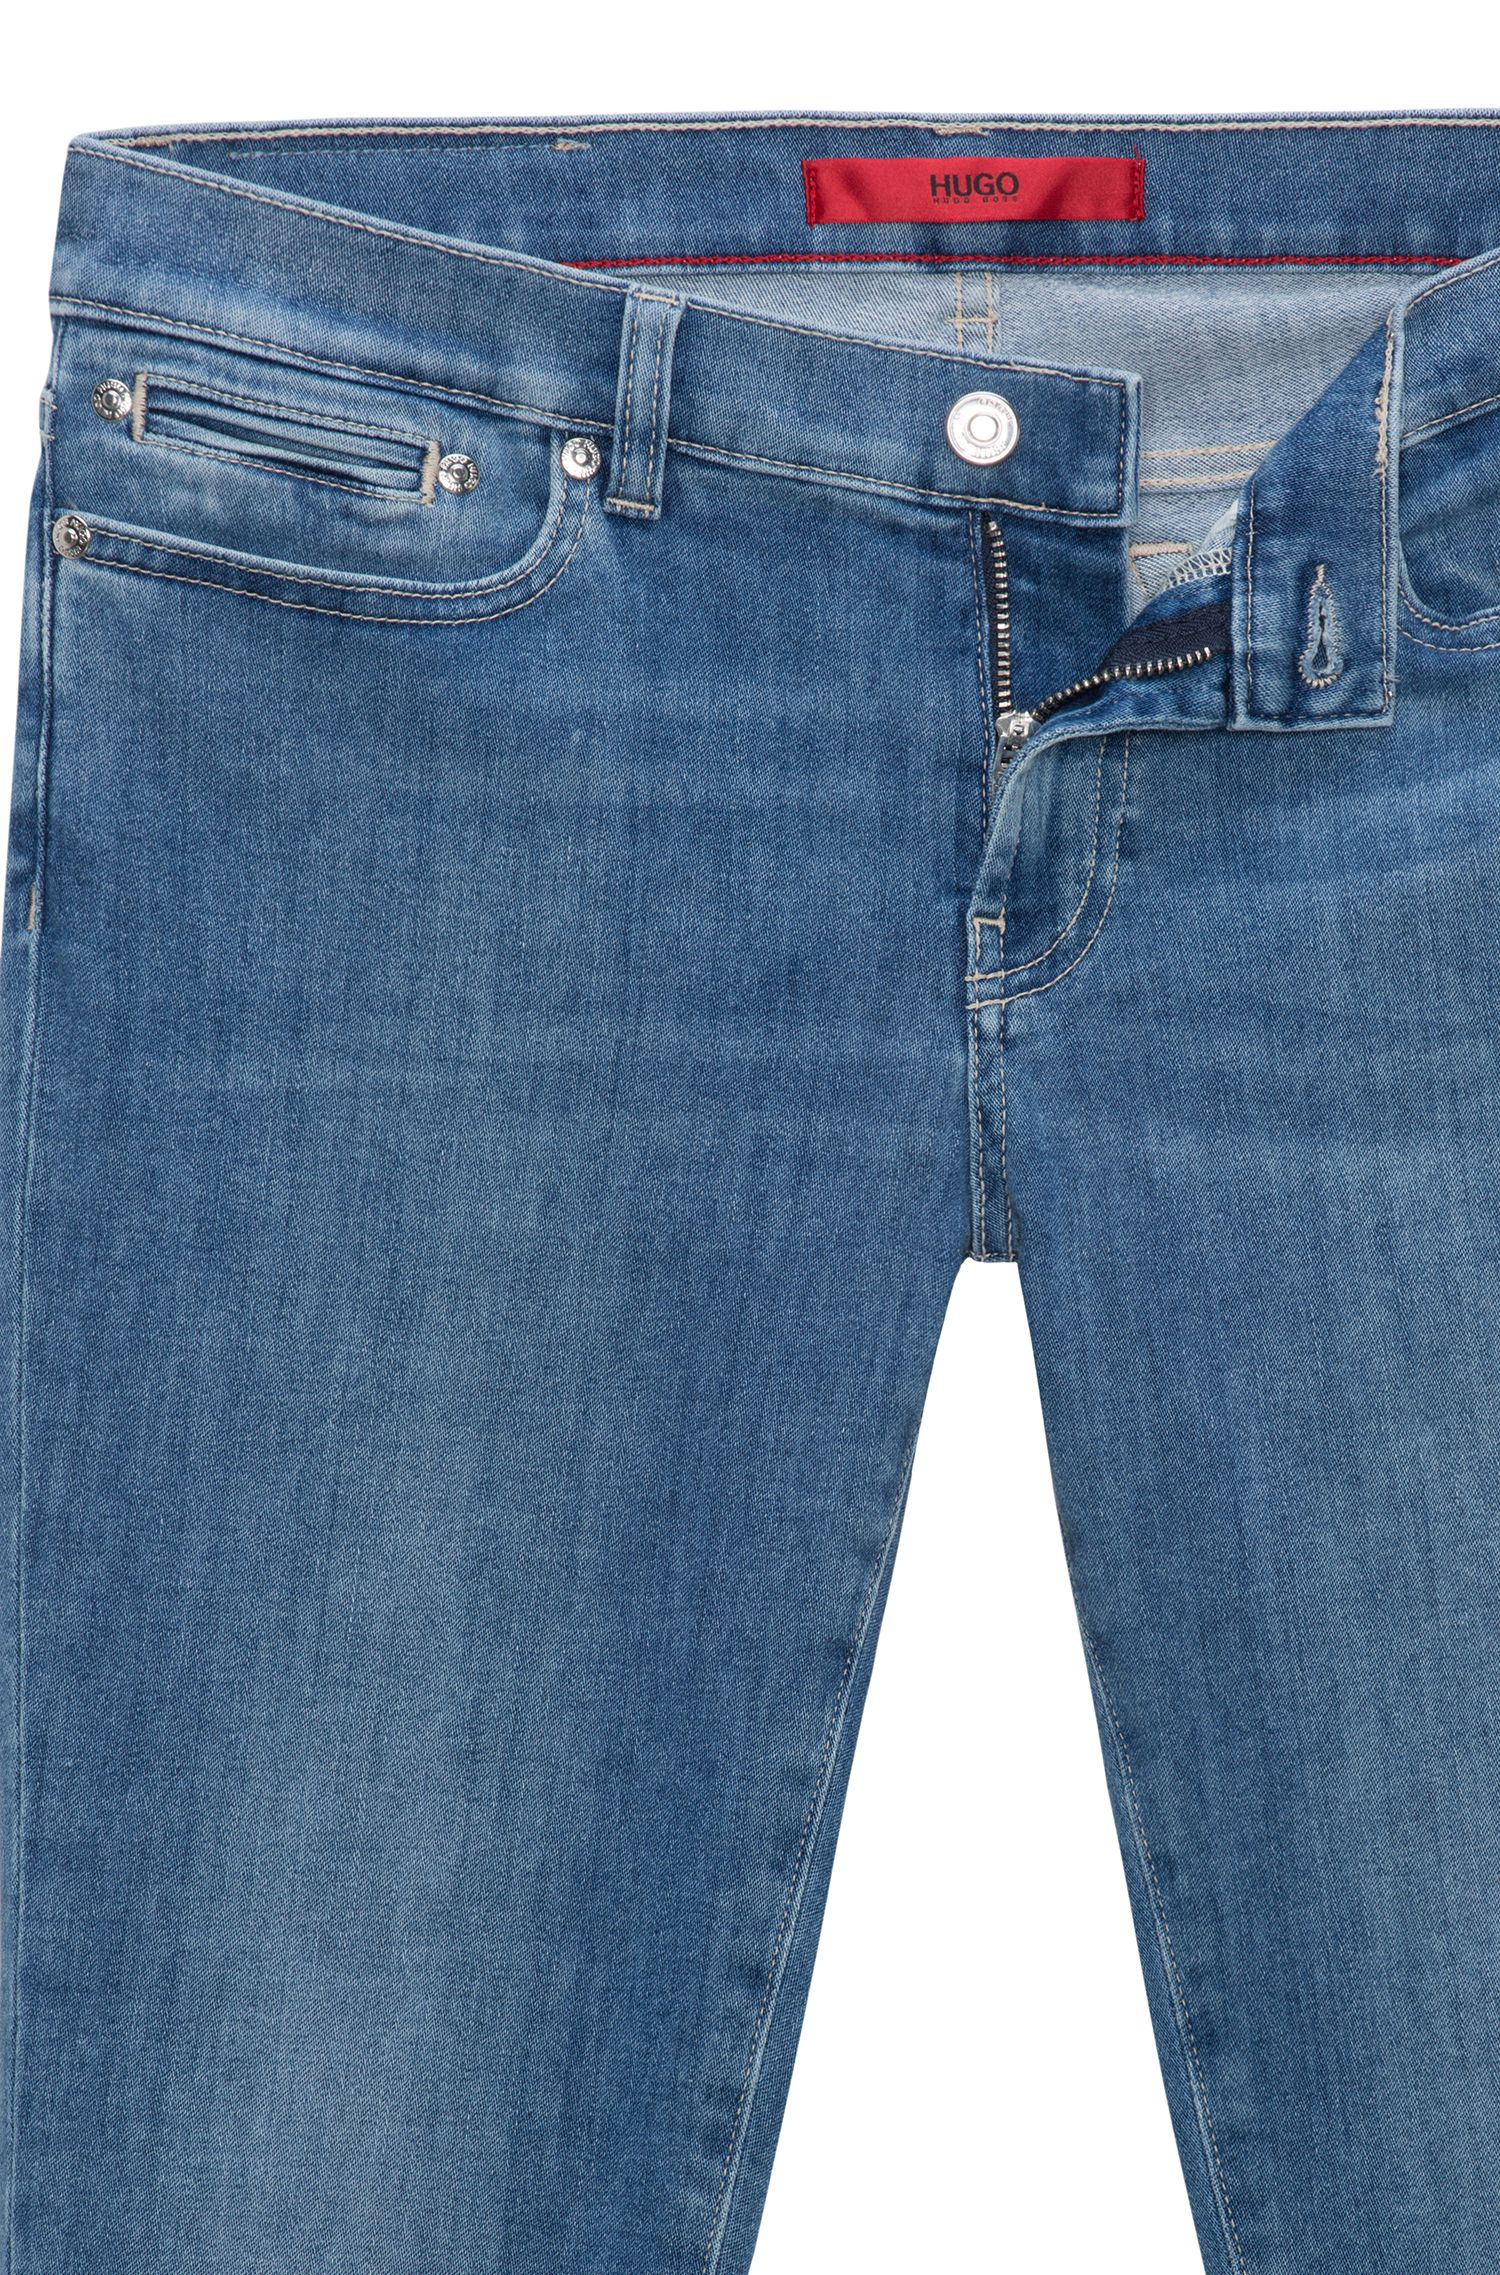 Stretch Cotton Jean, Skinny Fit | Gilljana